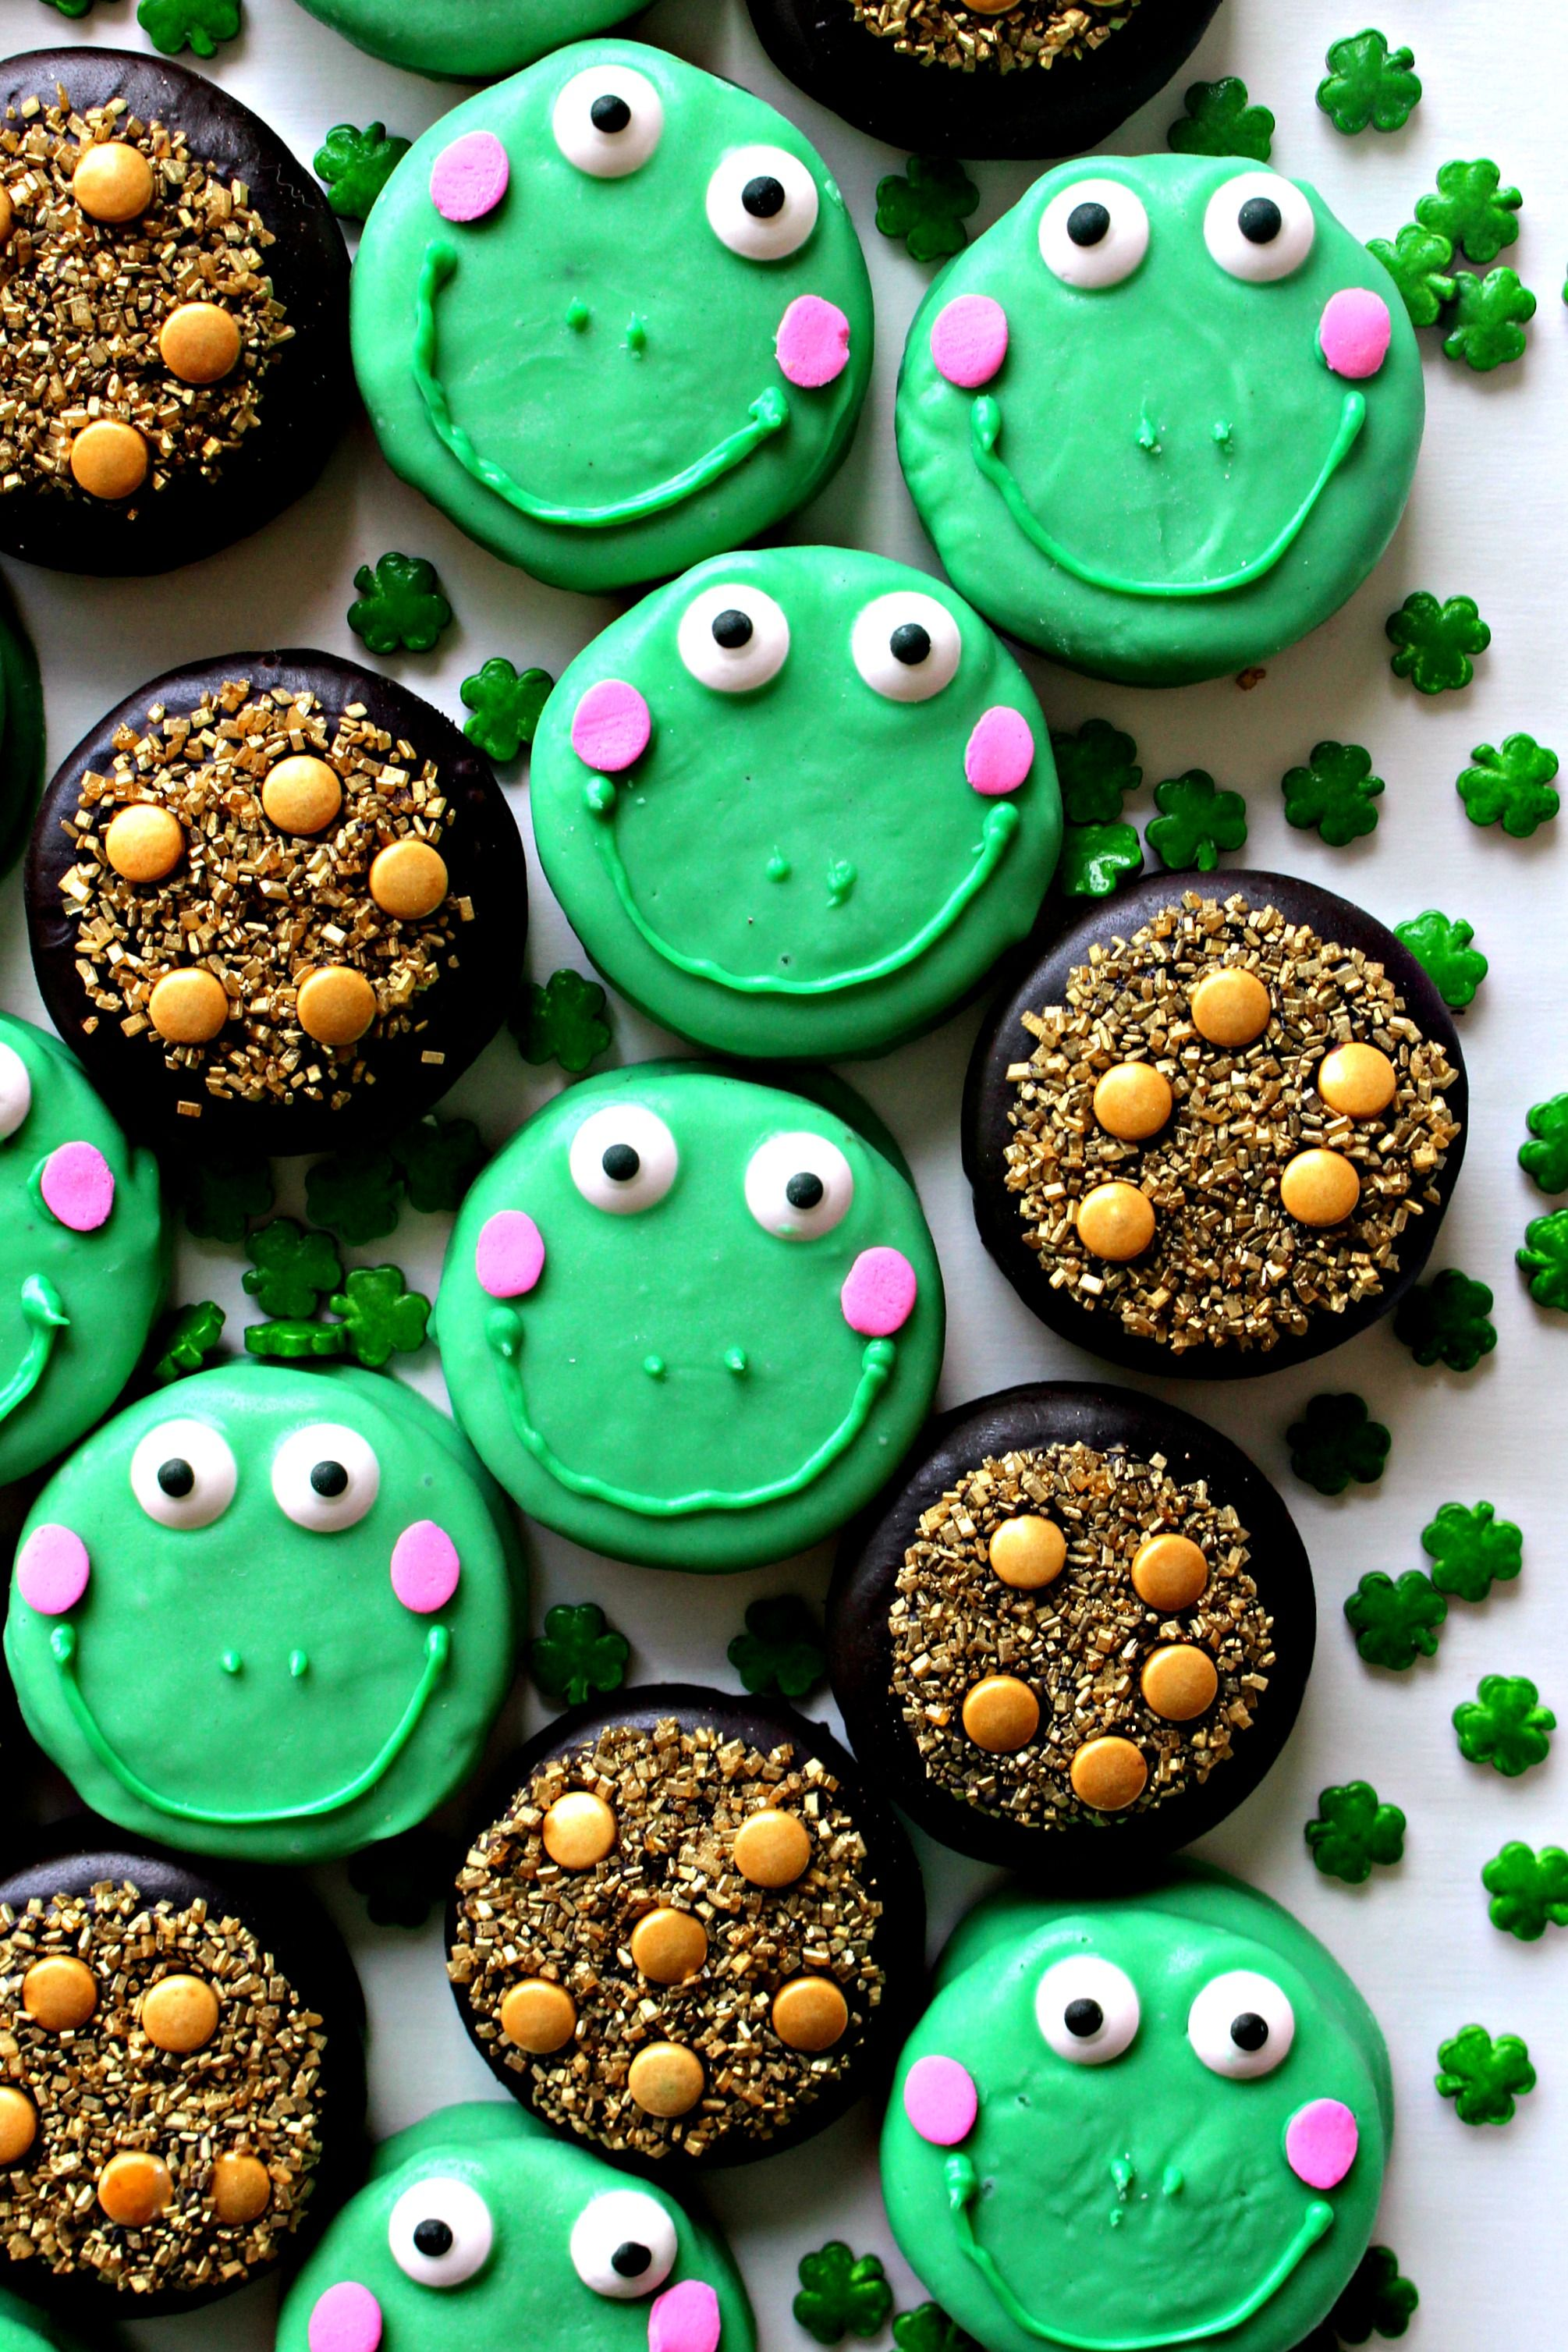 Chocolate Covered Leap-rechauns and Pots of Gold. Sprinkles and sparkling sugar turn chocolate sandwich cookies into St. Patrick's Day stand outs!| themondaybox.com